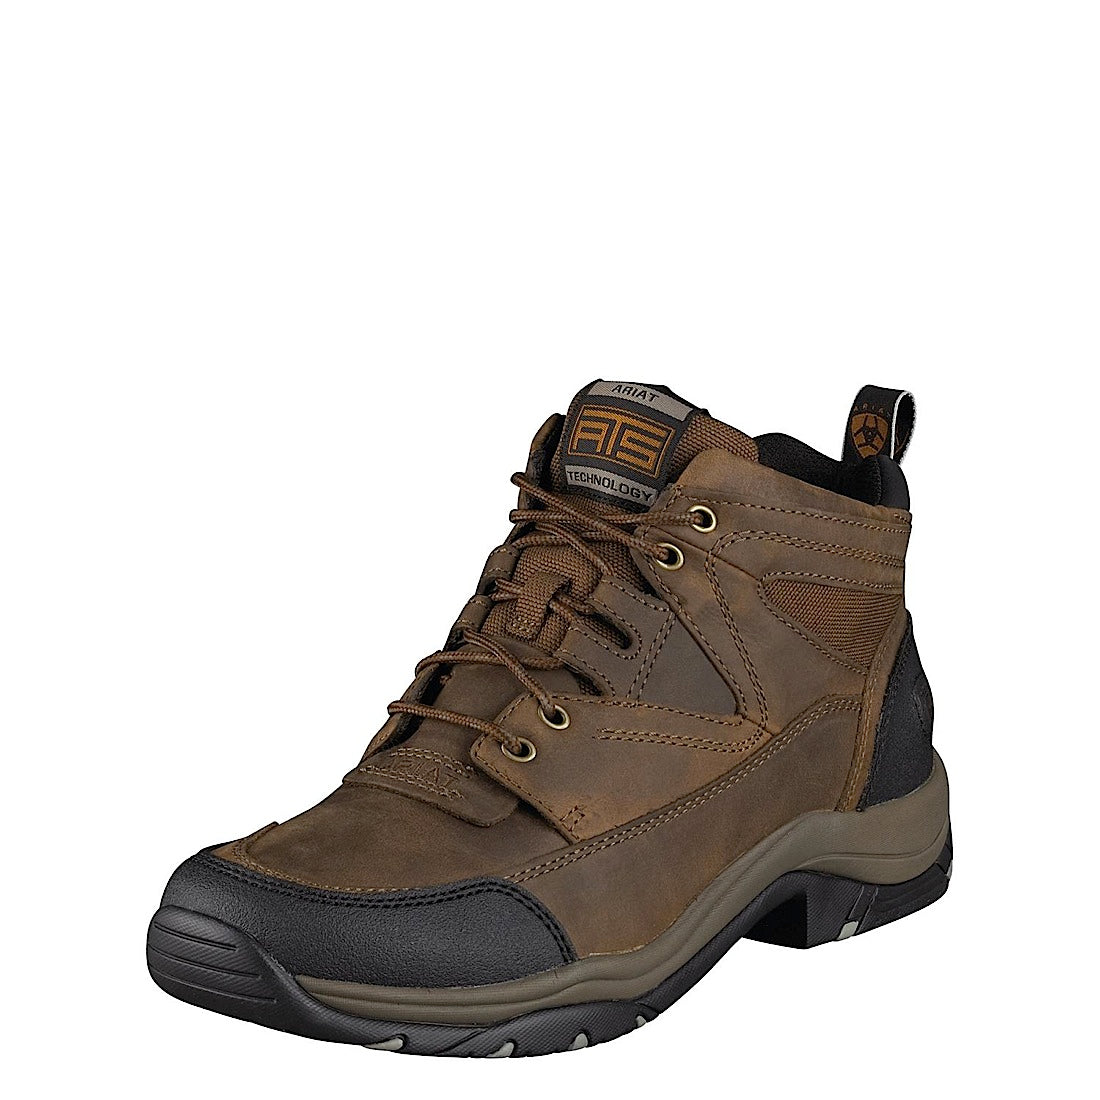 Ariat Terrain Endurance H2O Brown Men's Riding Boots